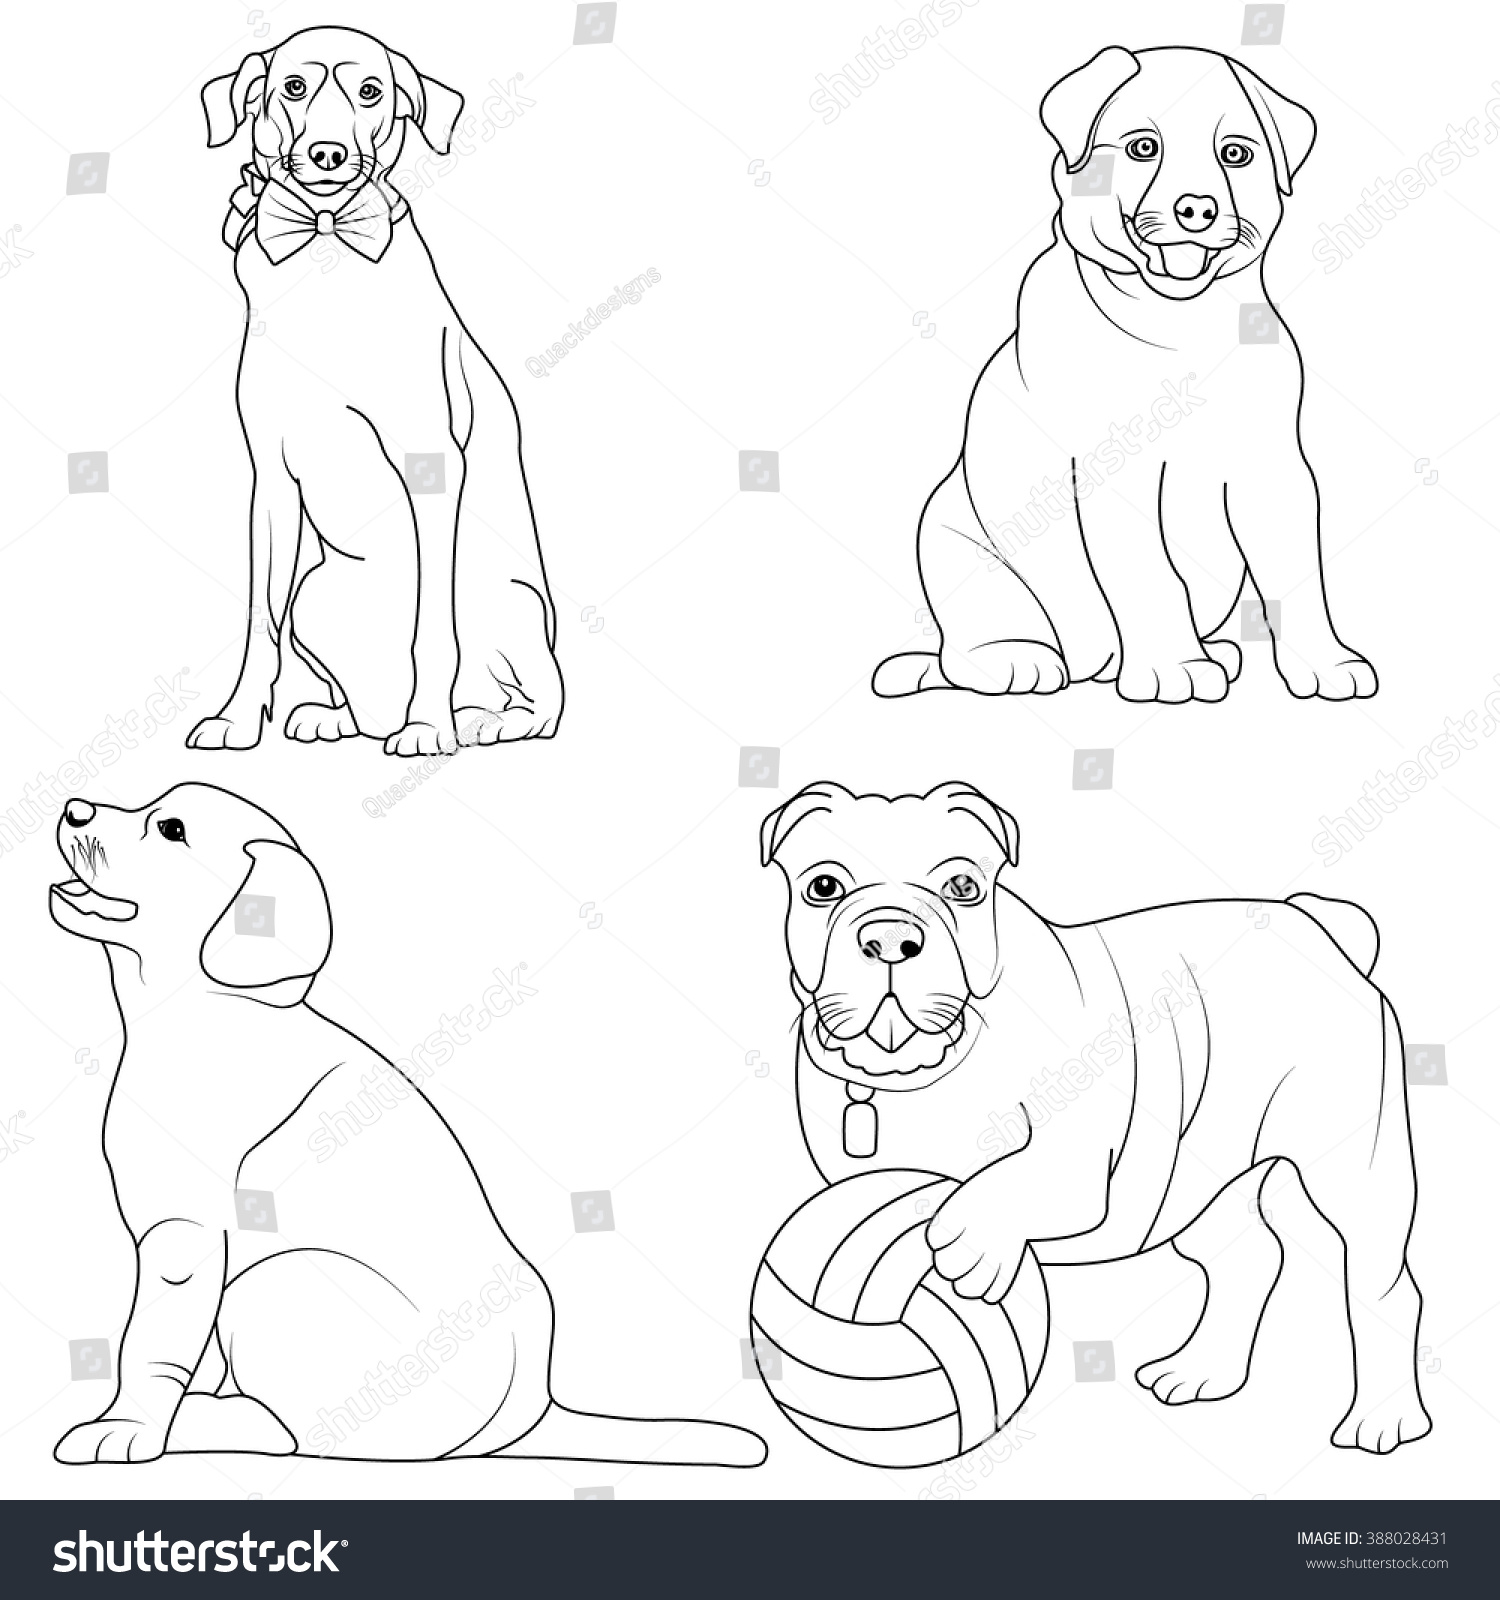 set 4 dogs coloring page black stock vector 388028431 shutterstock